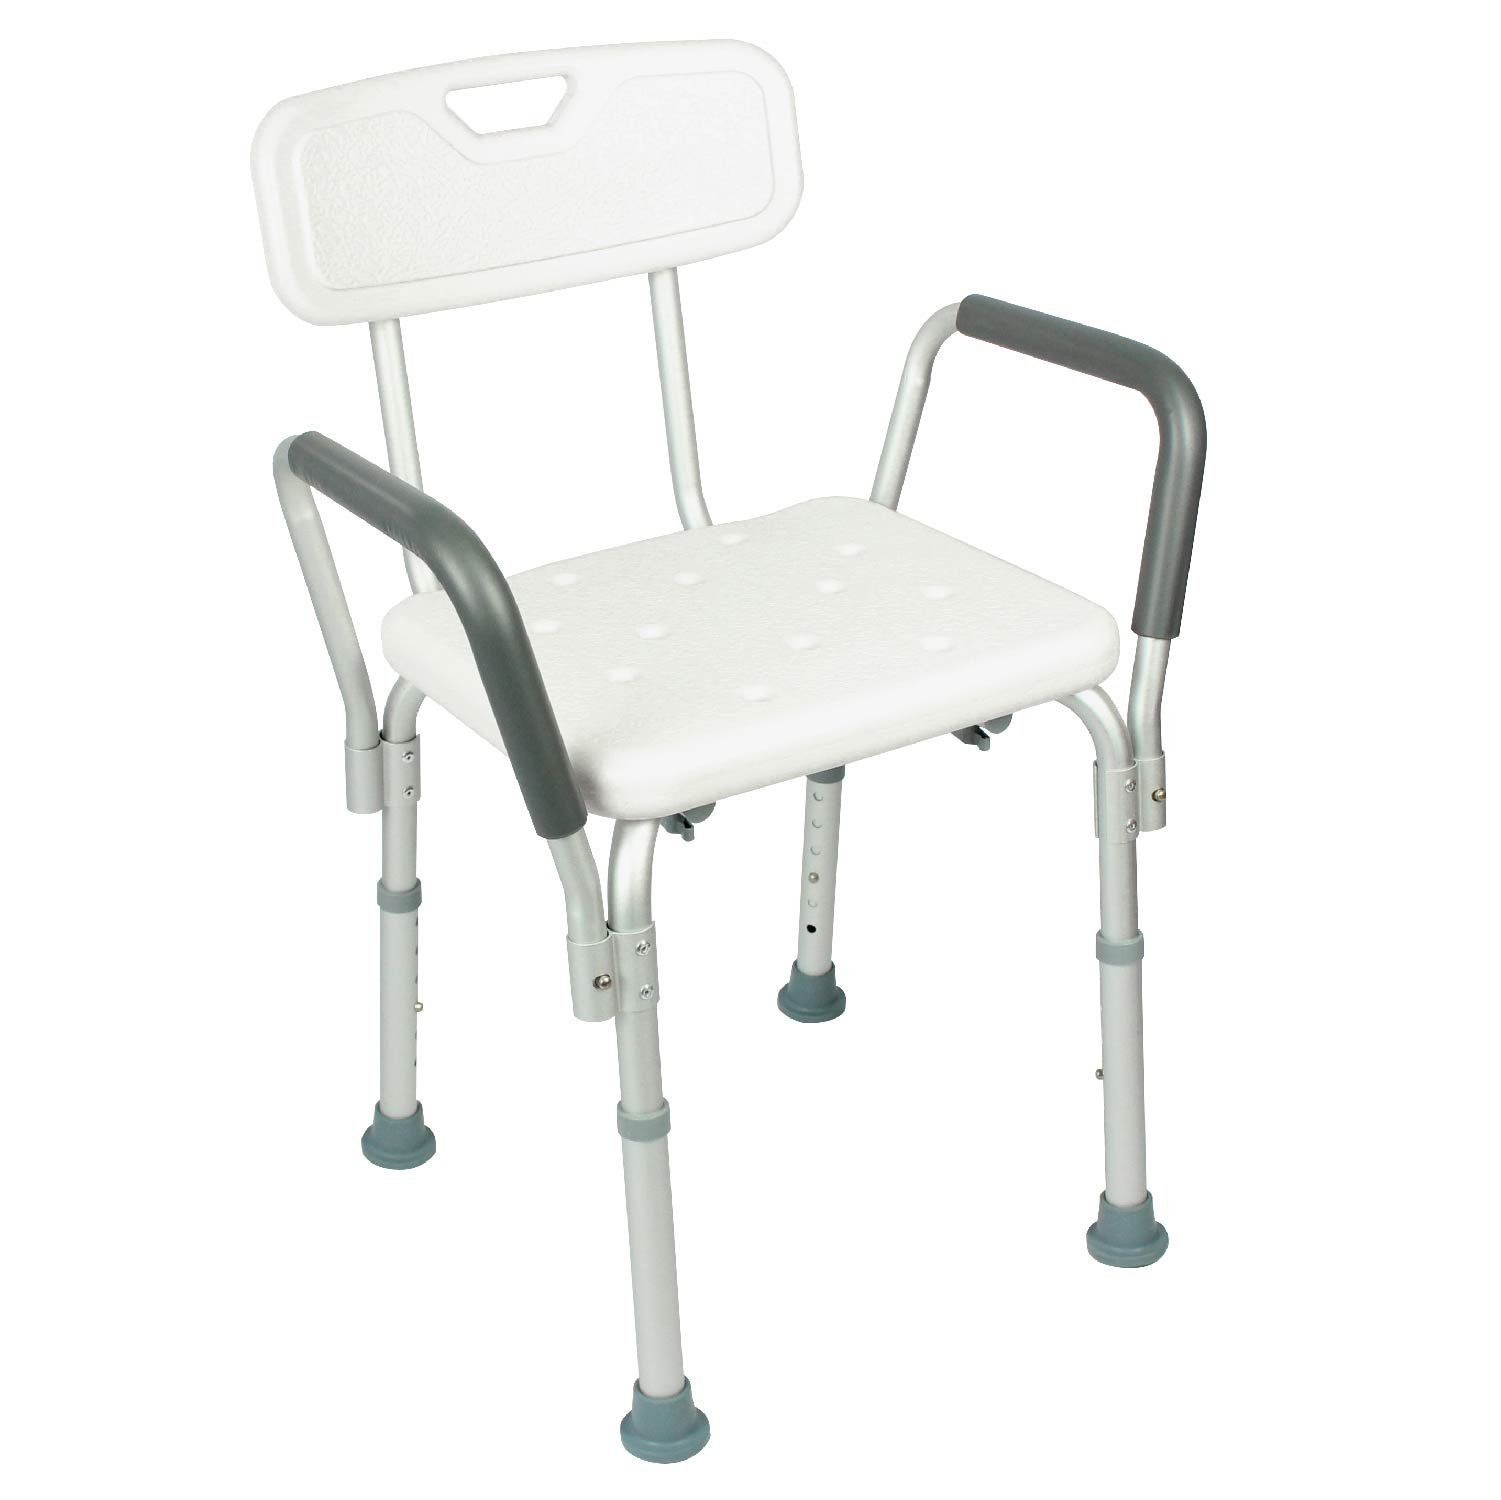 Shower Chair with Back by Vive - Bathtub Chair w/ Arms for Handicap ...